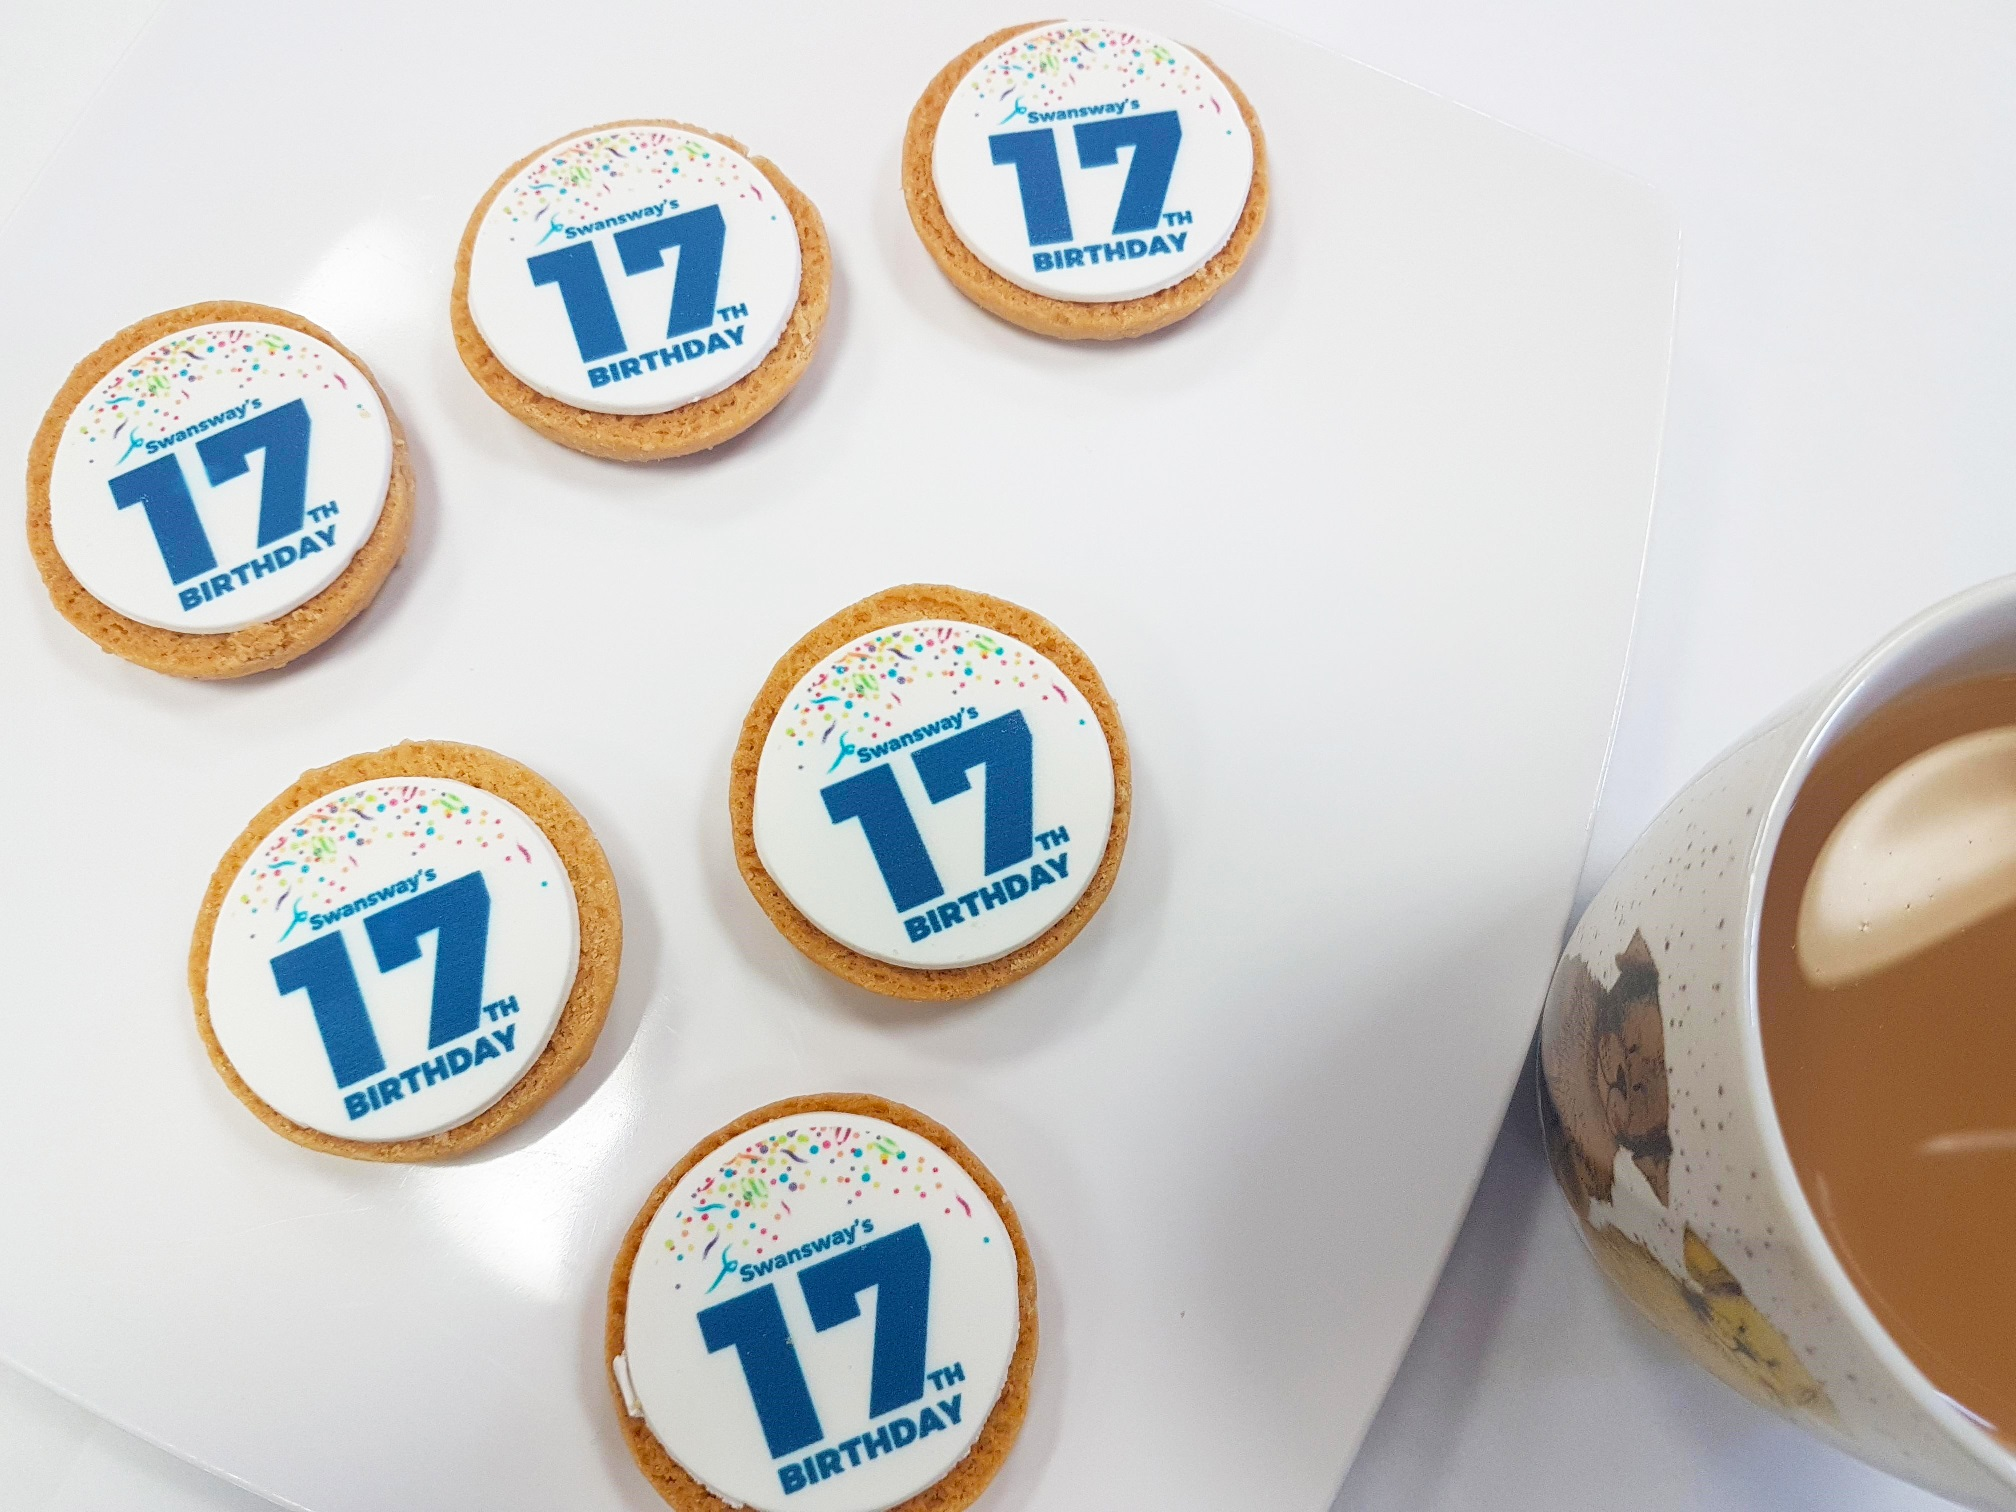 Swansway Motor Group celebrates 17th birthday!